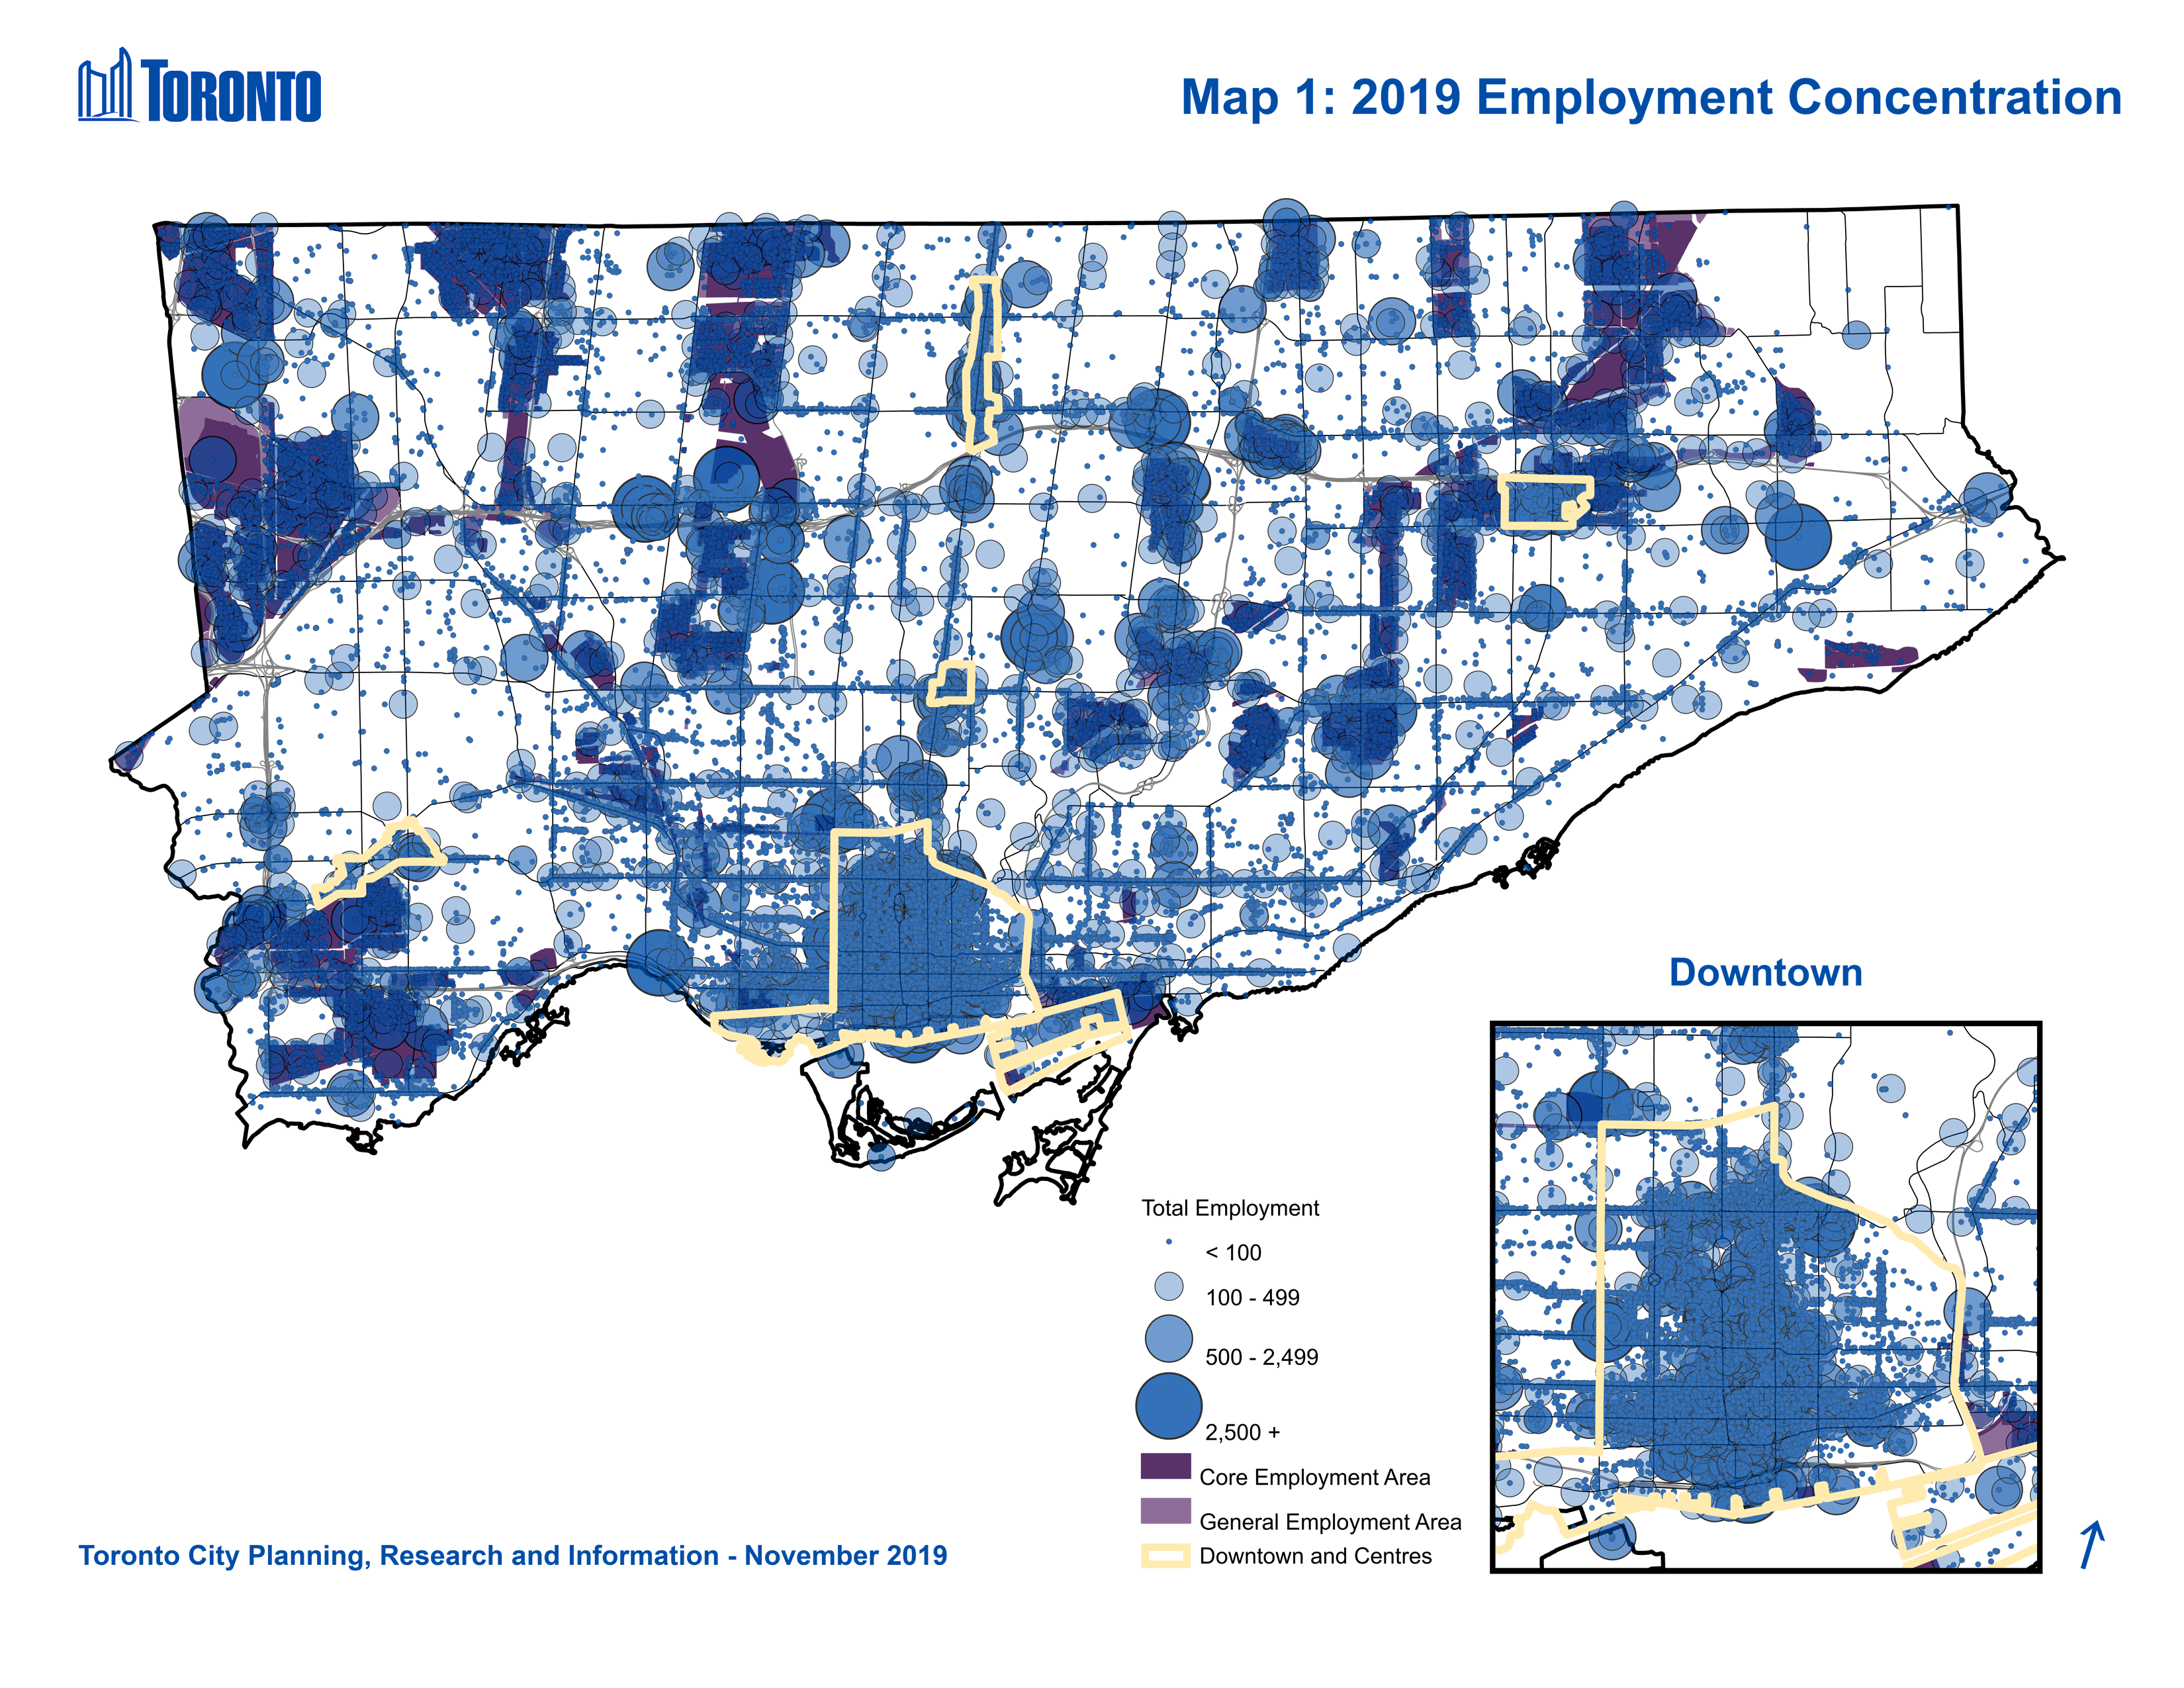 Map 1: Employment Concentrations, City of Toronto. This map shows locations of all establishments in the city, with graduated symbols for establishments (1) having less than 100 employees, (2) having between 100 and 499 employees (3) having between 500 and 2,499 employees and (4) having over 2,500 employees.